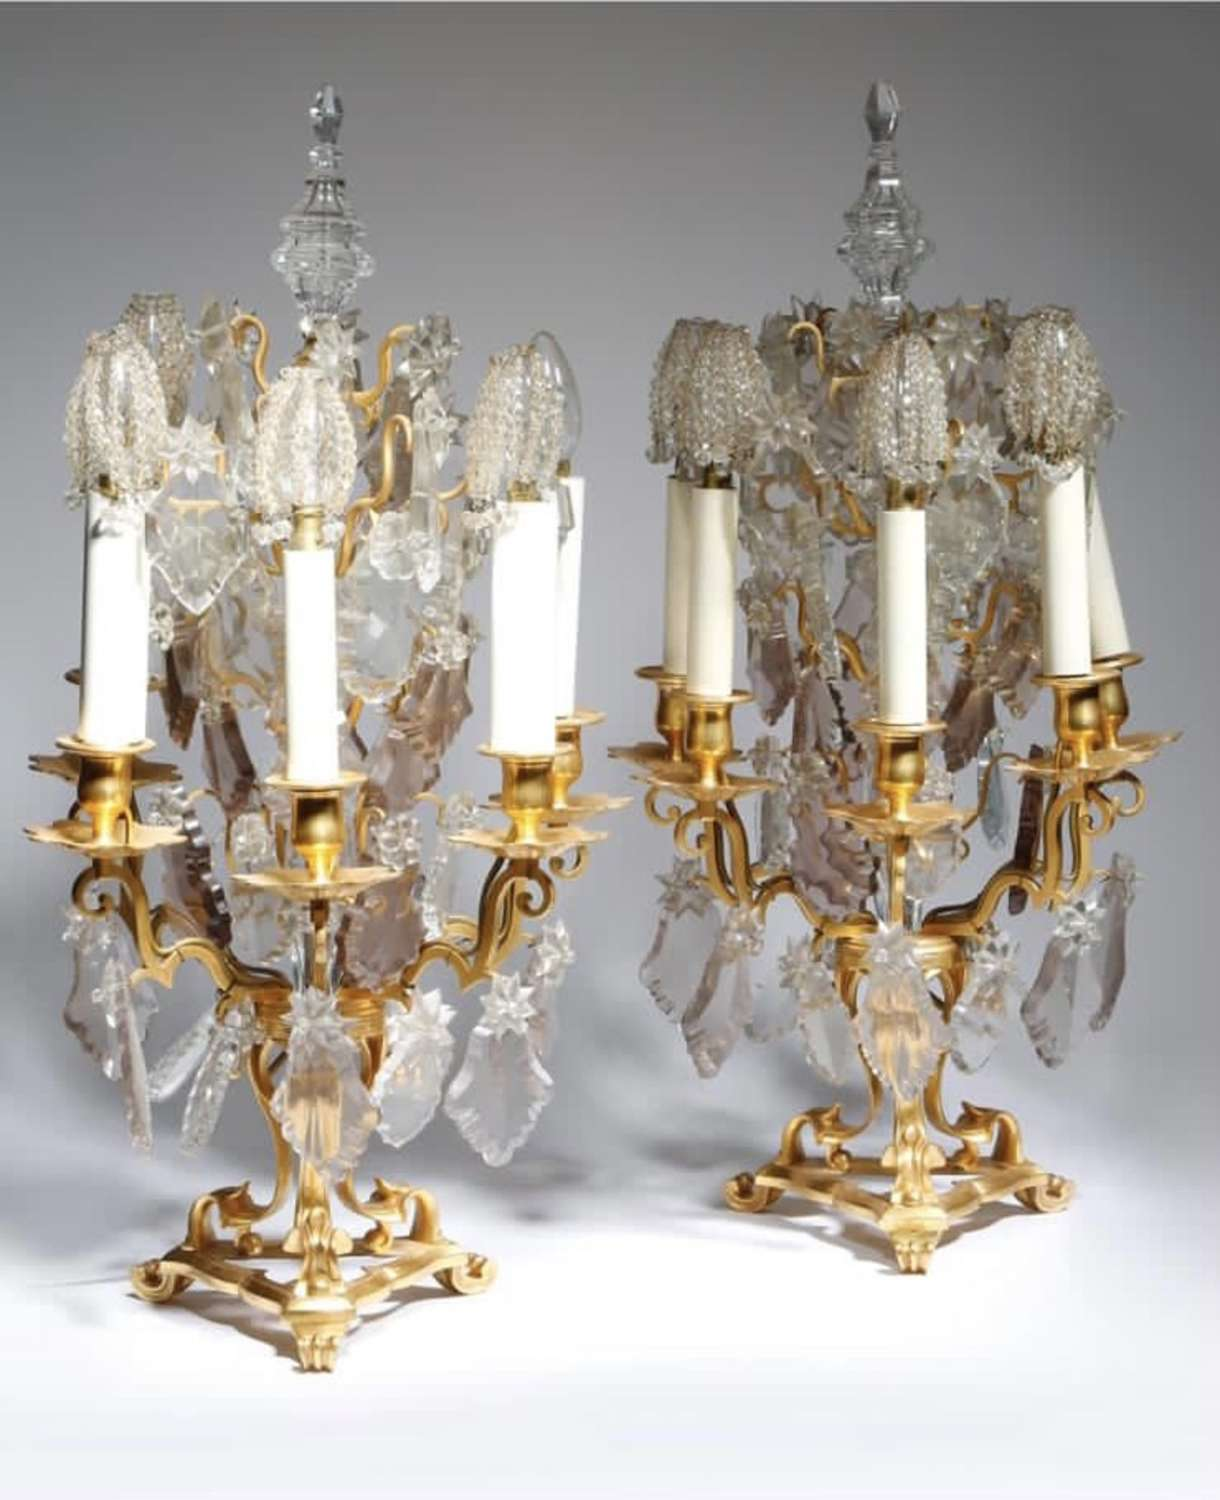 A PAIR OF GILT METAL AND GLASS FIVE-LIGHT CANDELABRA